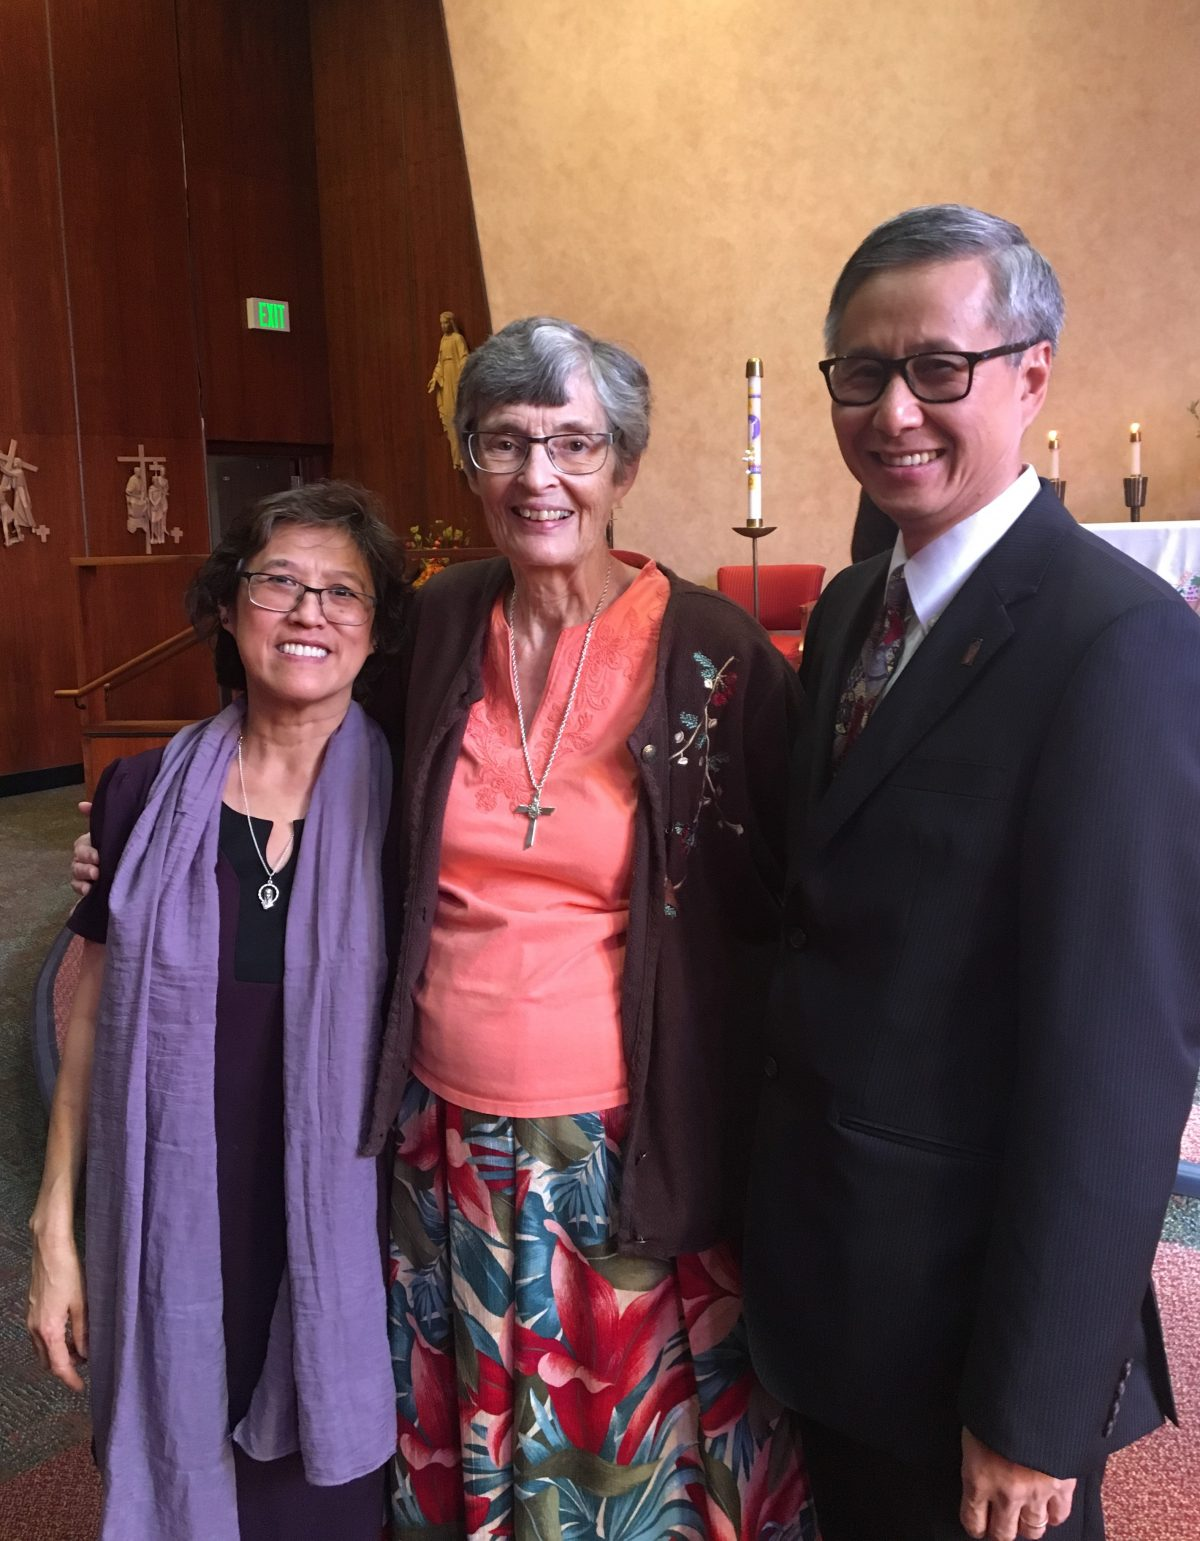 Lana Pham, Sr Clare and Tim Pham closeup in front of altar